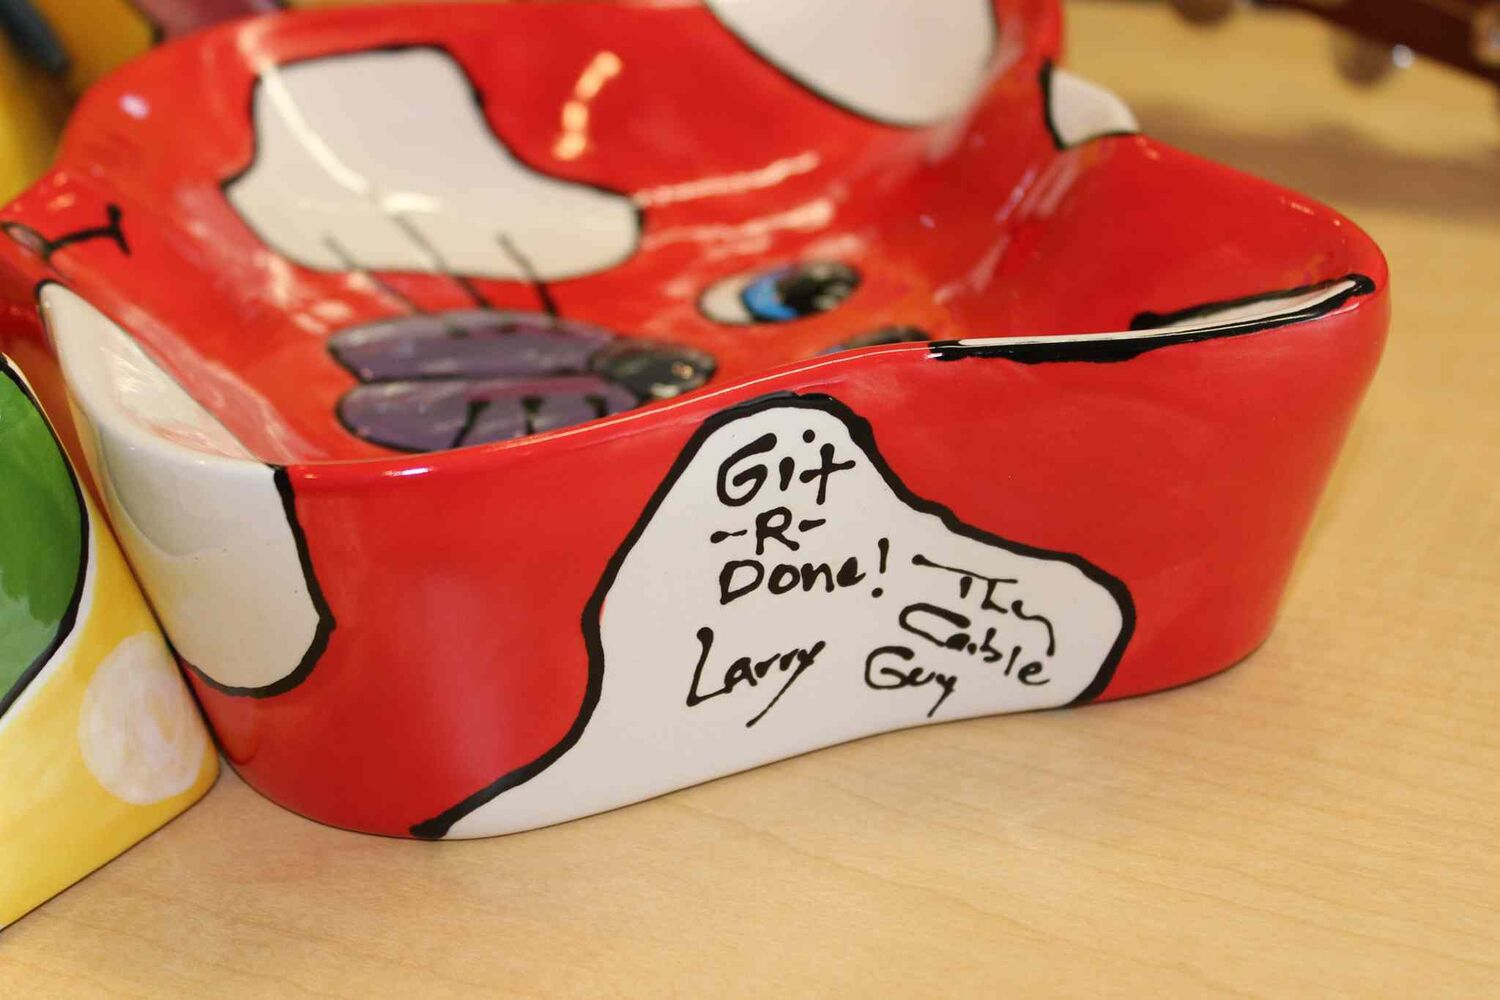 WHS ceramic pet bowl signed by Larry the Cable Guy  (Steph Crosier)